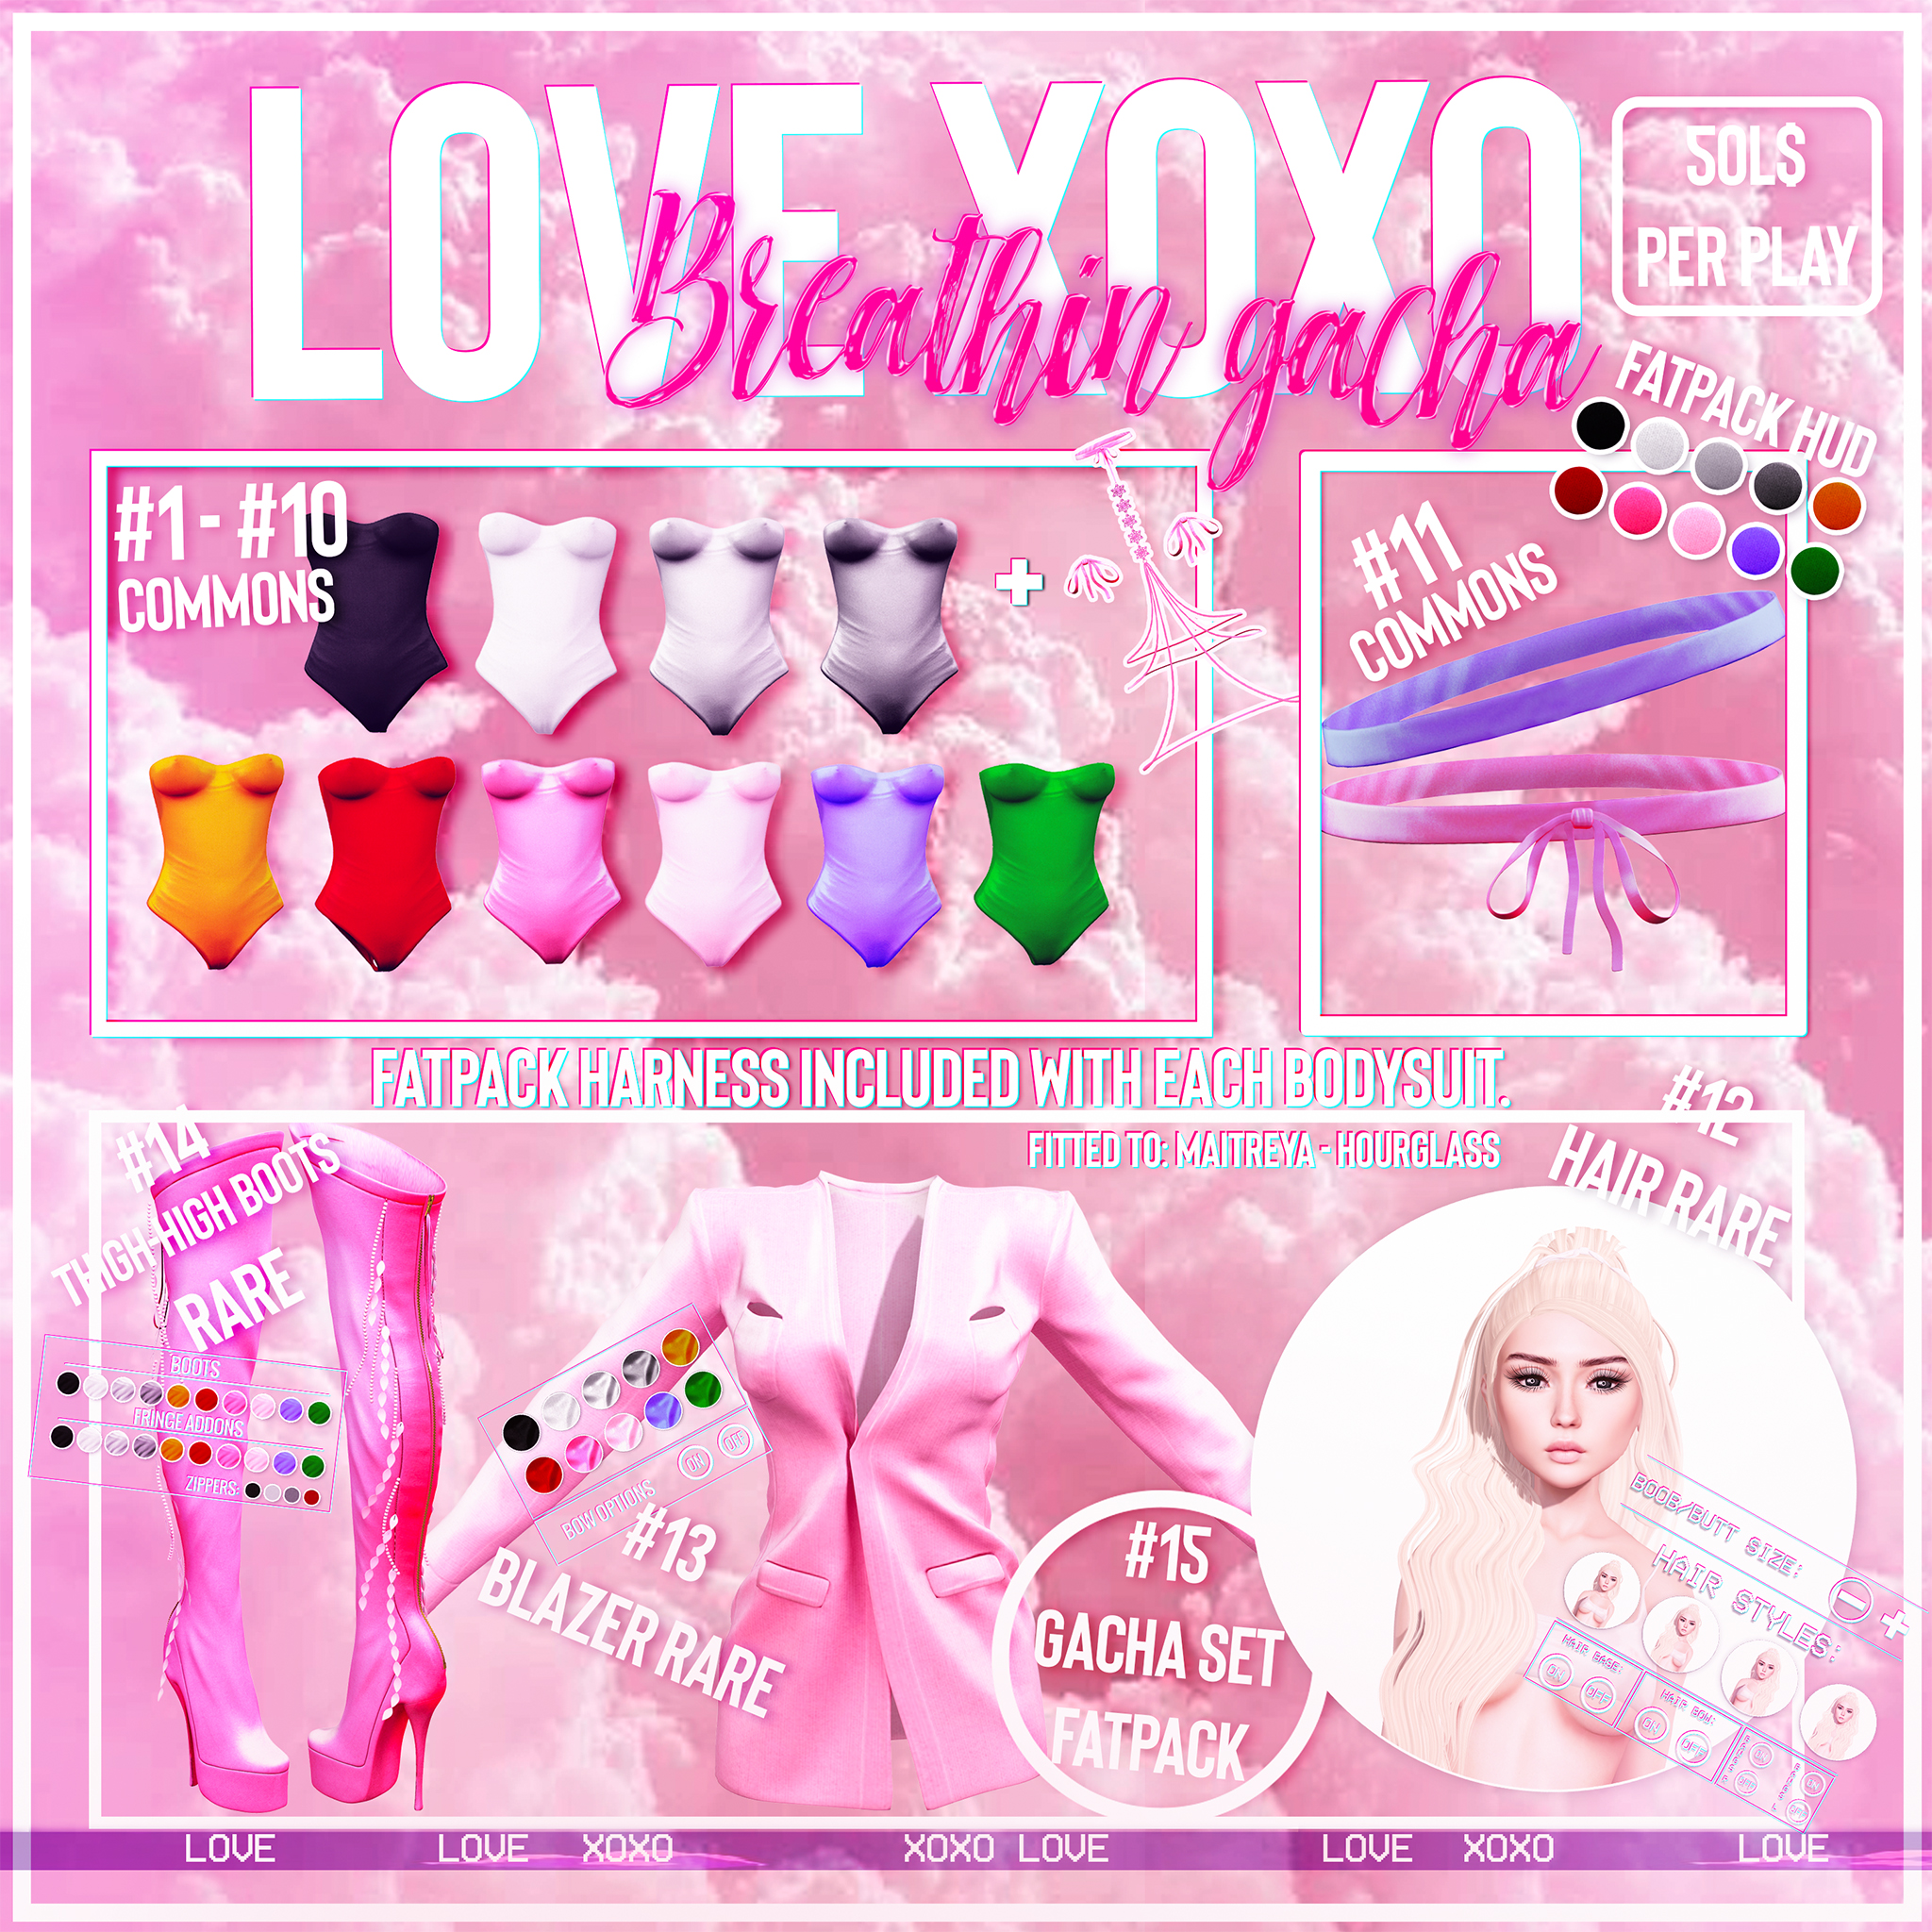 Love [Breathin Gacha Key] Full Size.jpg